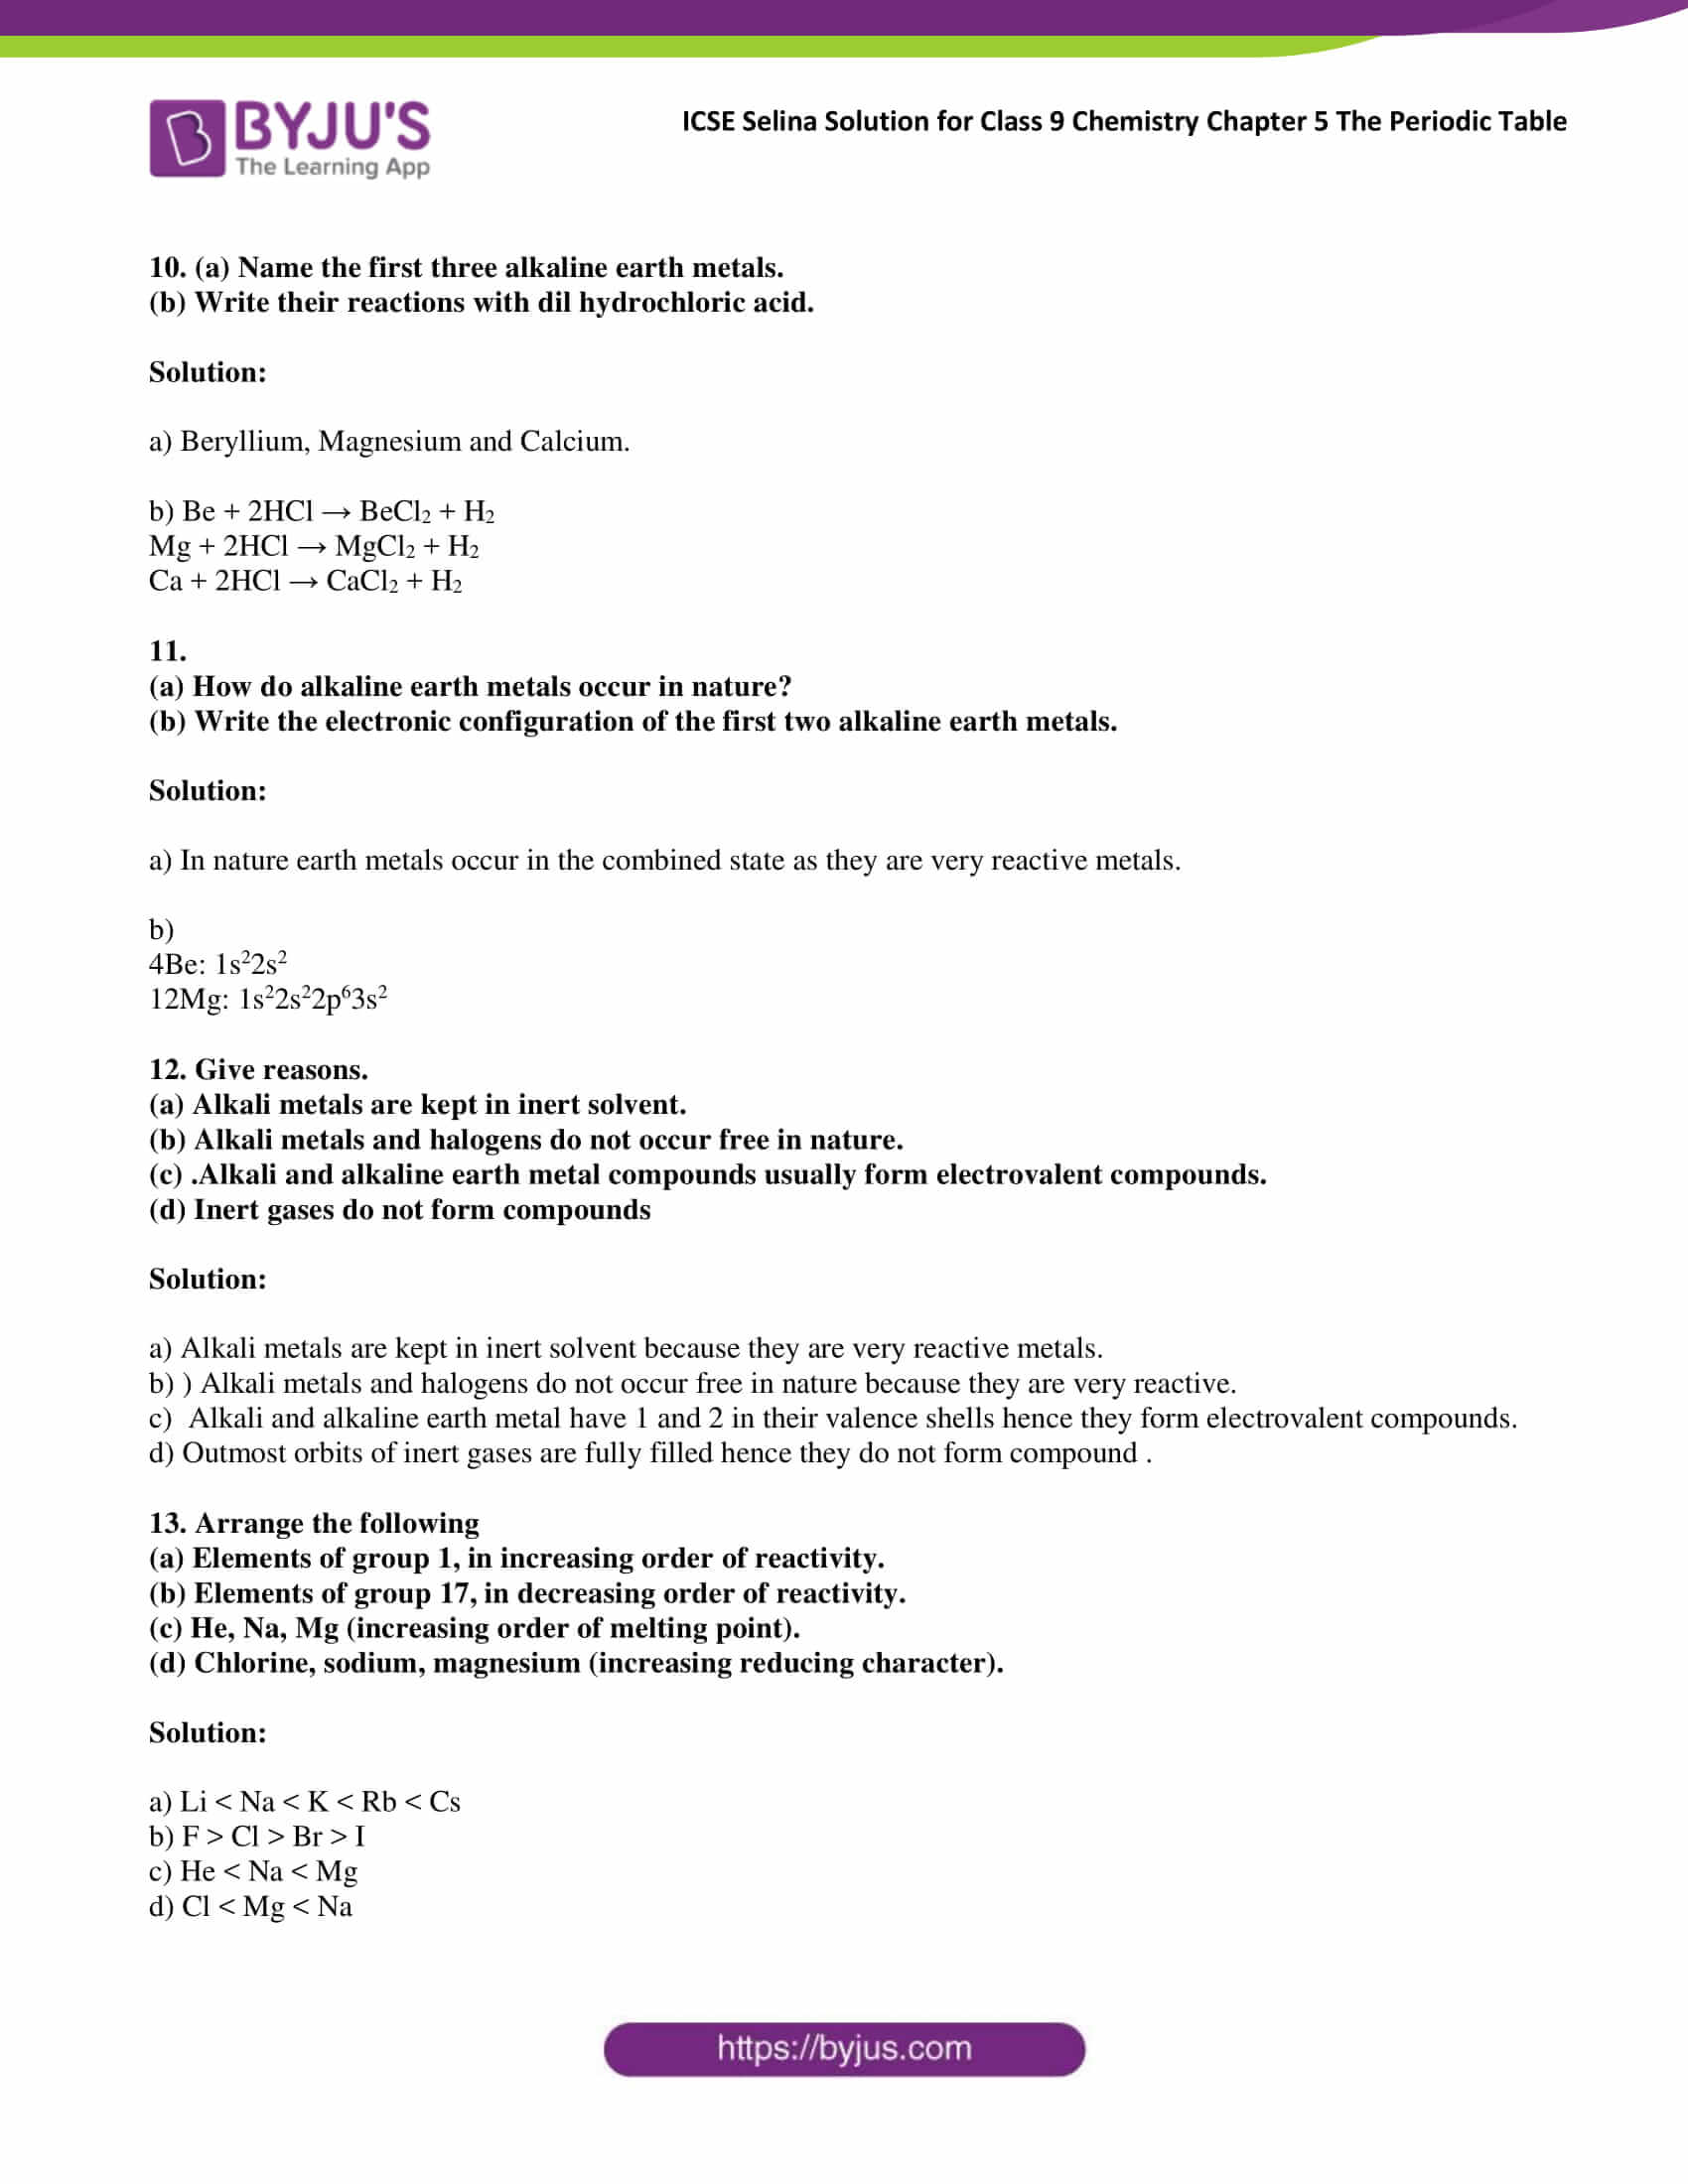 ICSE Selina Solution for class 9 Chemistry Chapter 5 Ex part 13